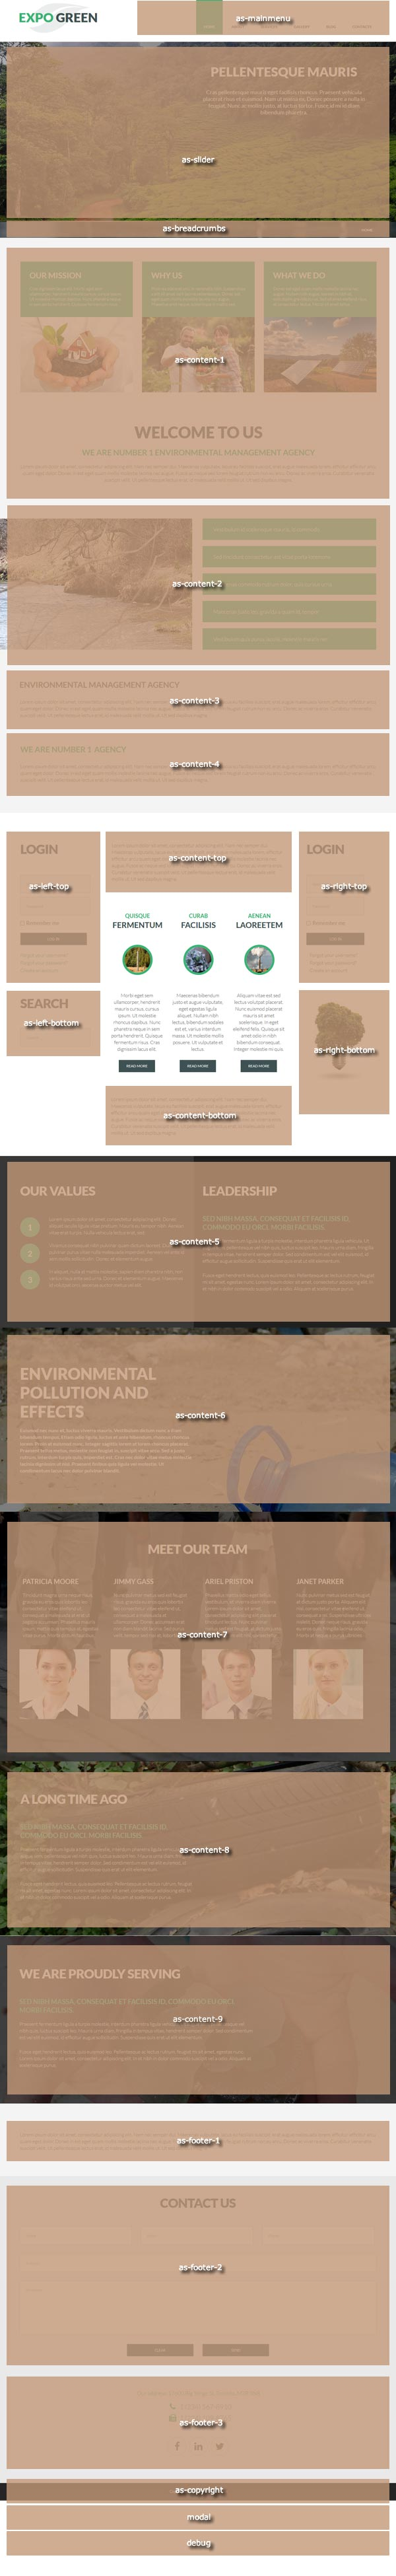 Environmental Joomla Template - Module Positions